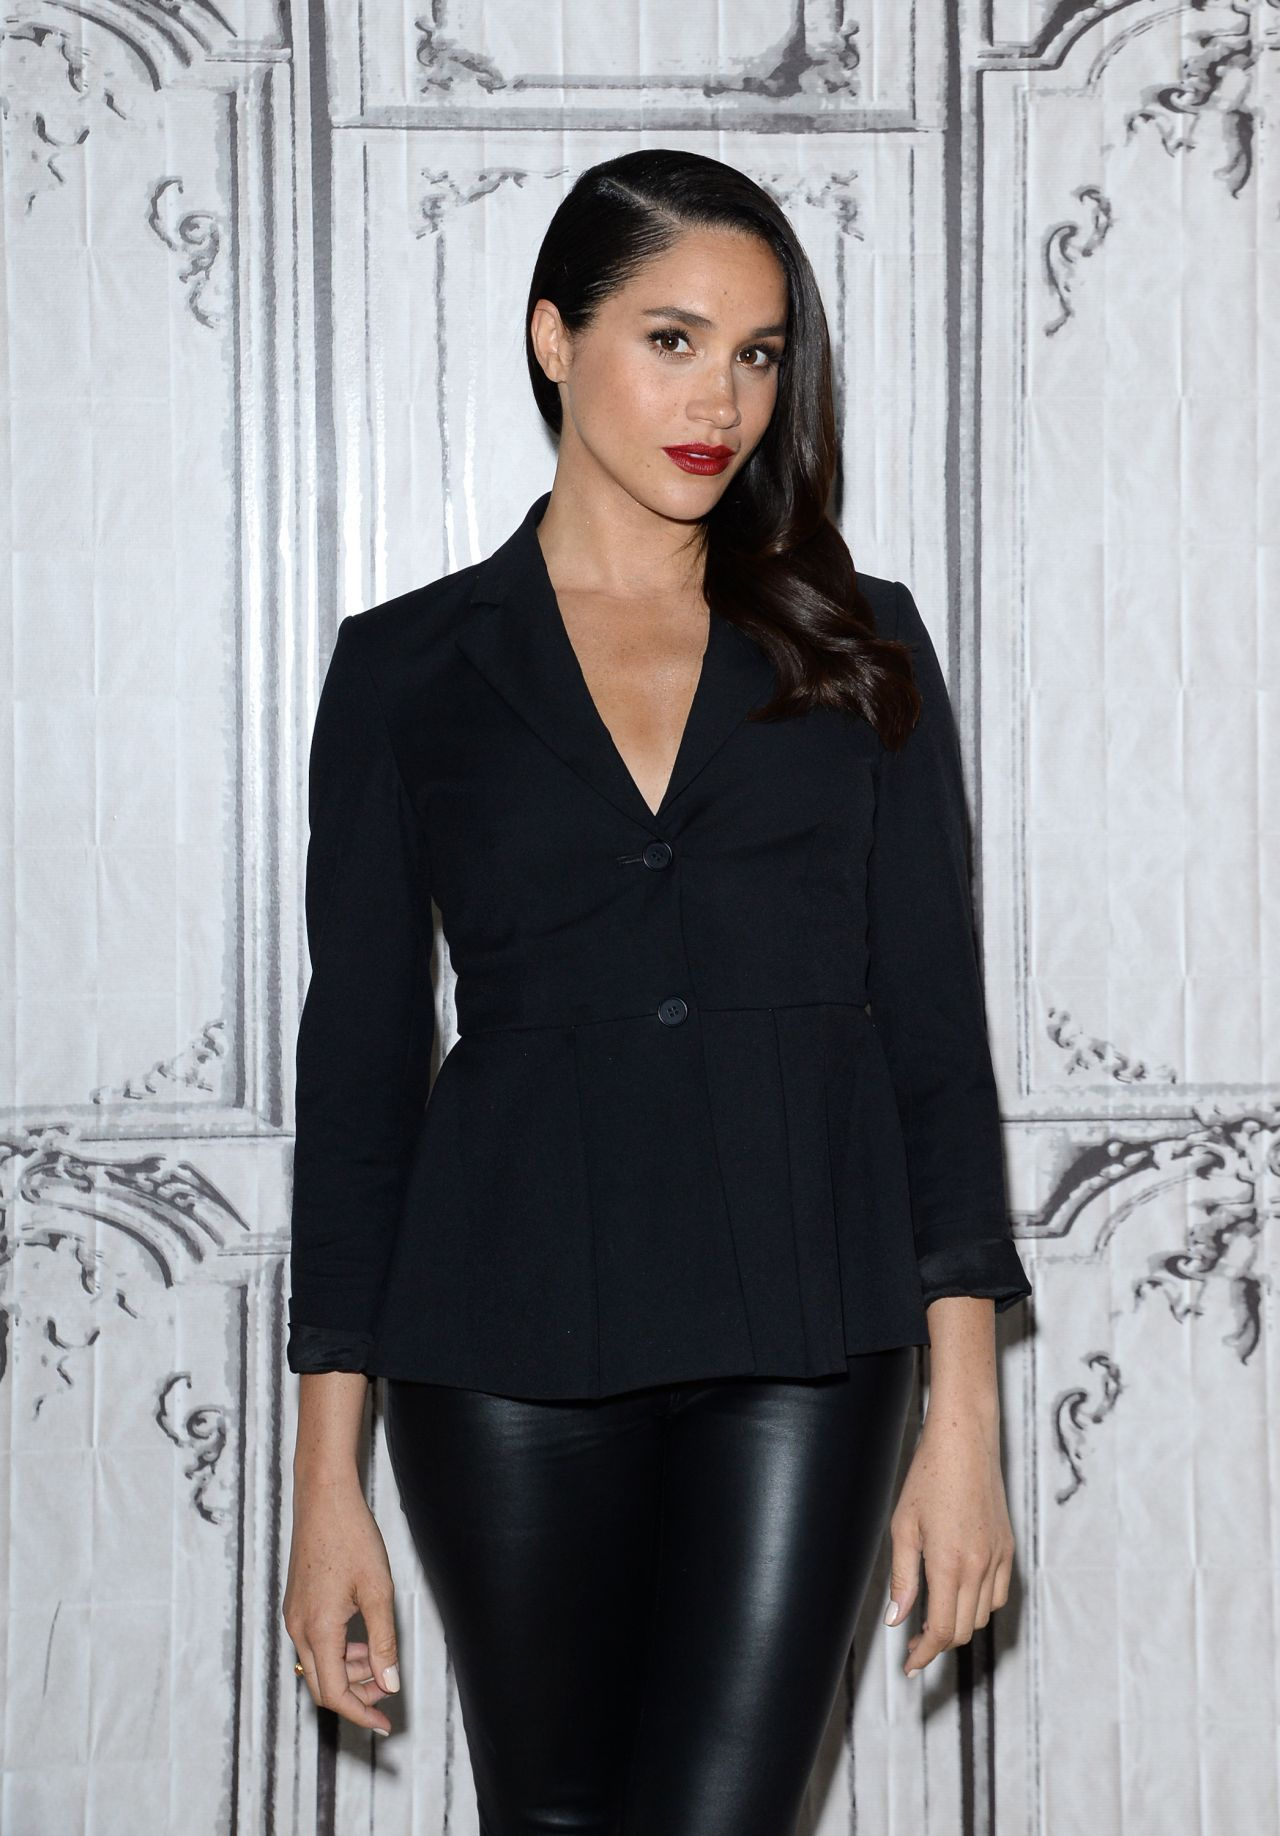 Meghan Markle Aol Build Speaker Series For 39 Suits 39 In